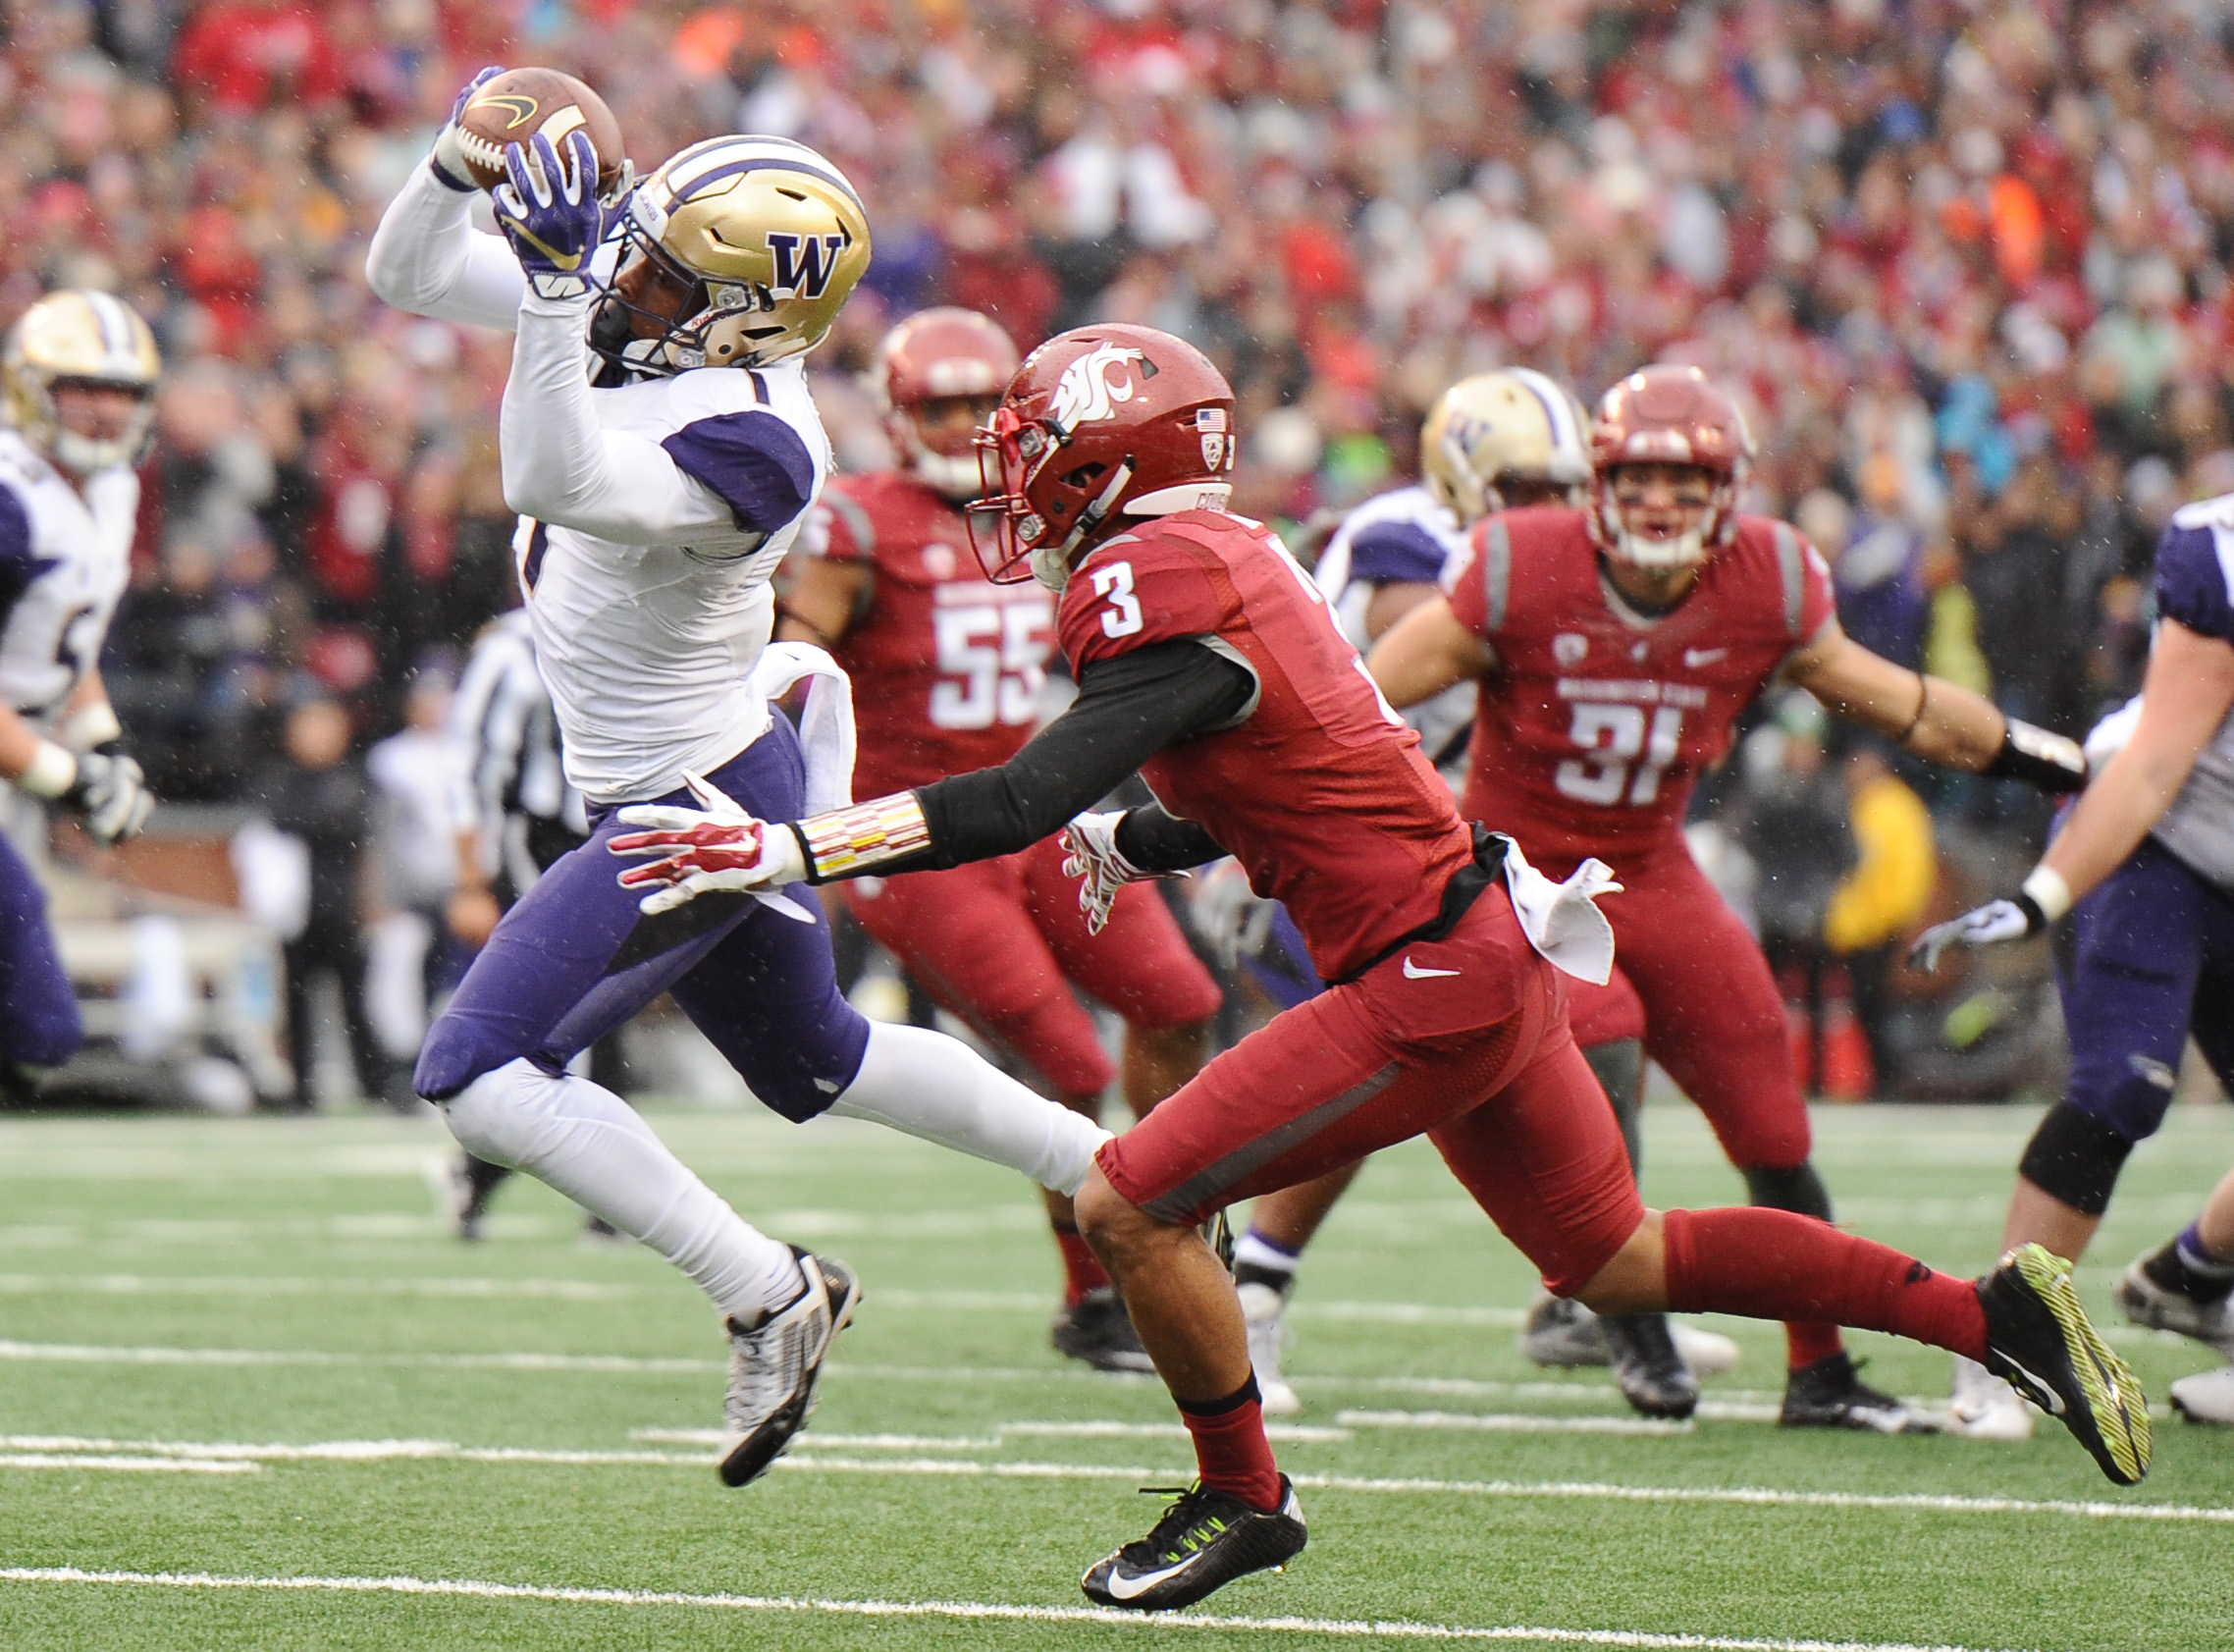 Nov 25, 2016; Pullman, WA, USA; Washington Huskies wide receiver John Ross (1) makes a catch in front of Washington State Cougars cornerback Darrien Molton (3) during the first half at Martin Stadium. Mandatory Credit: James Snook-USA TODAY Sports